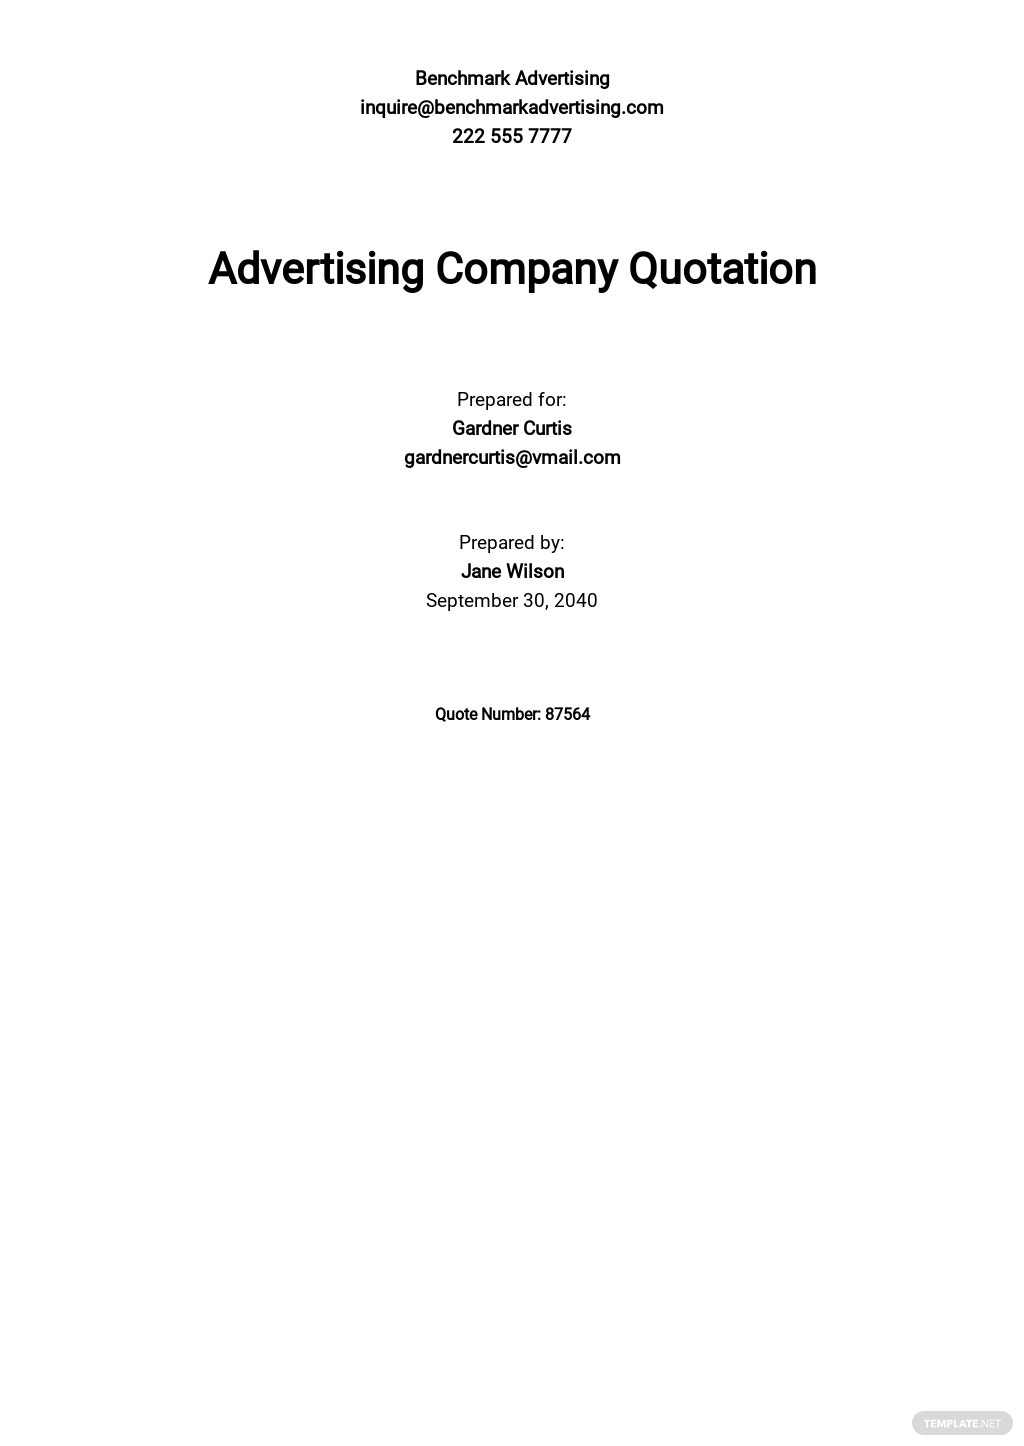 Advertising Company Quotation Template